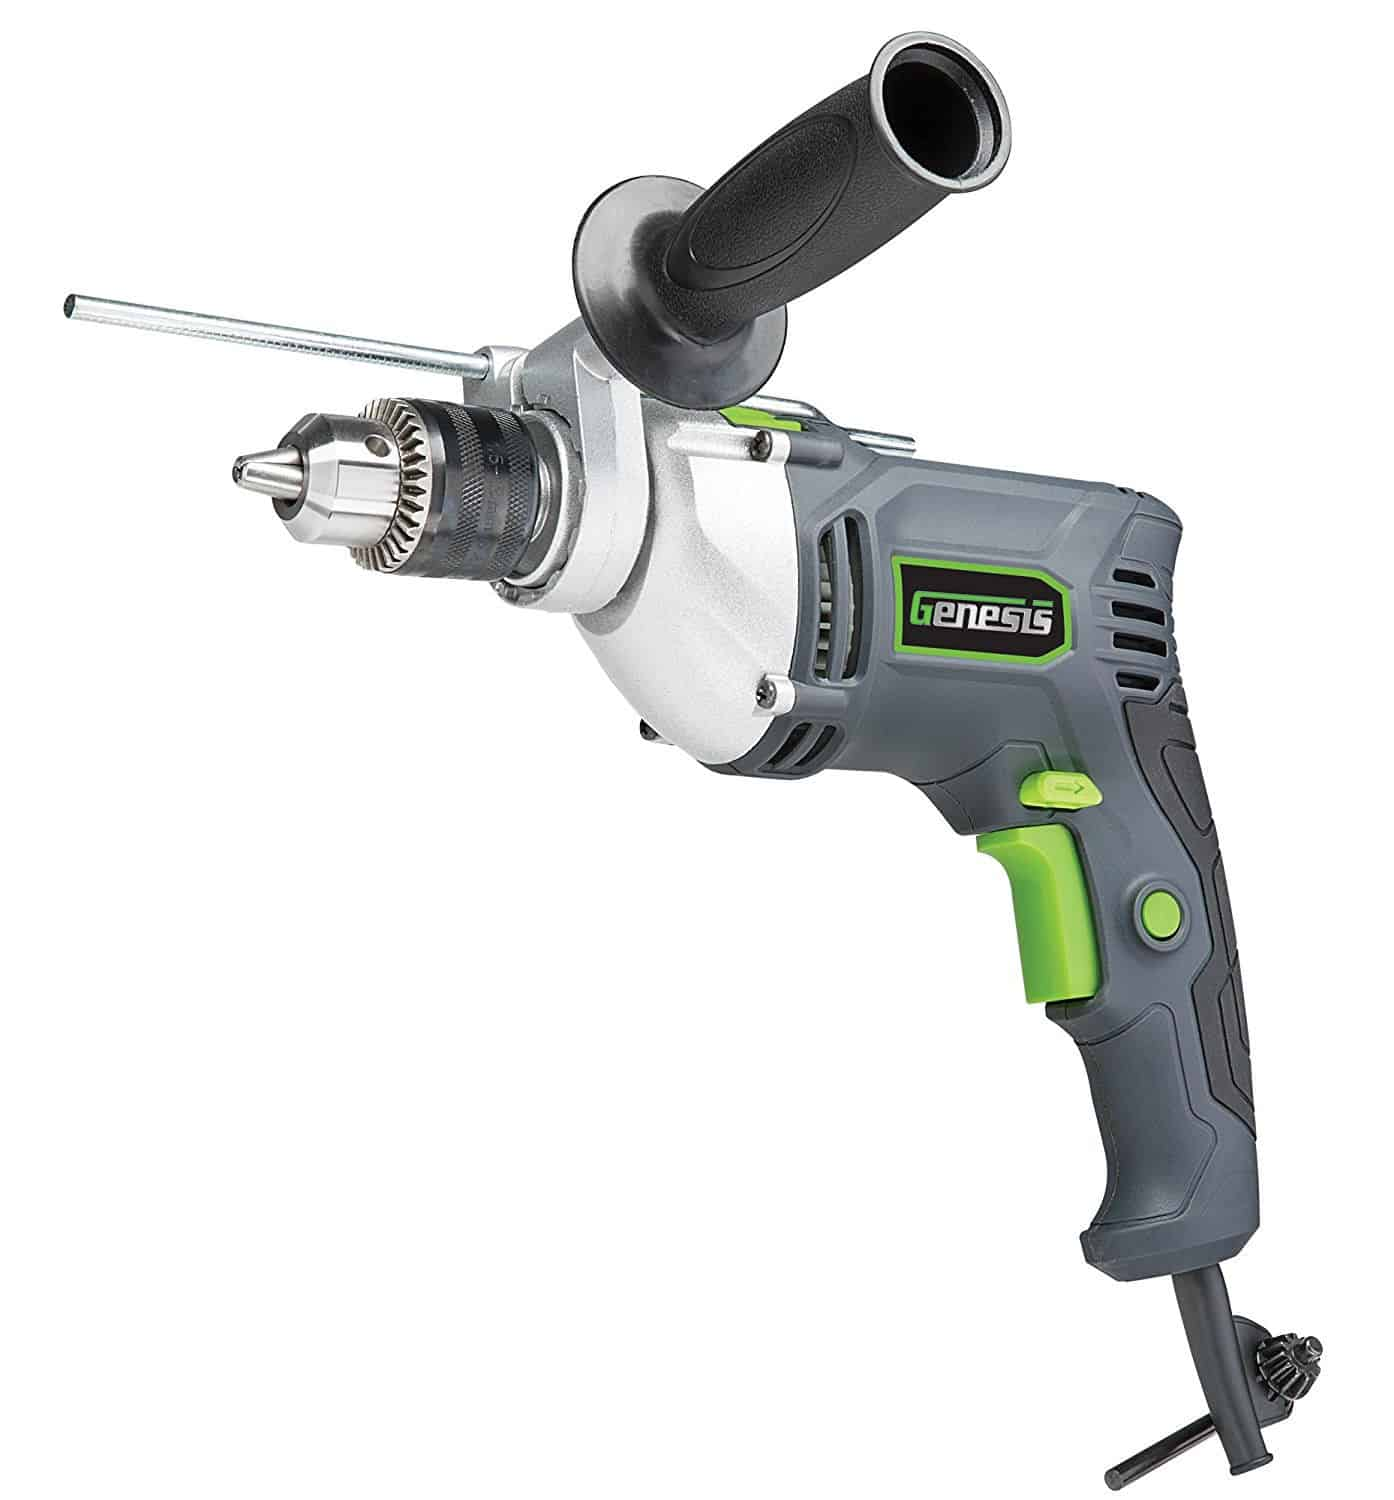 Reversible hammer drill with chuck key, side control handle and depth gauge.